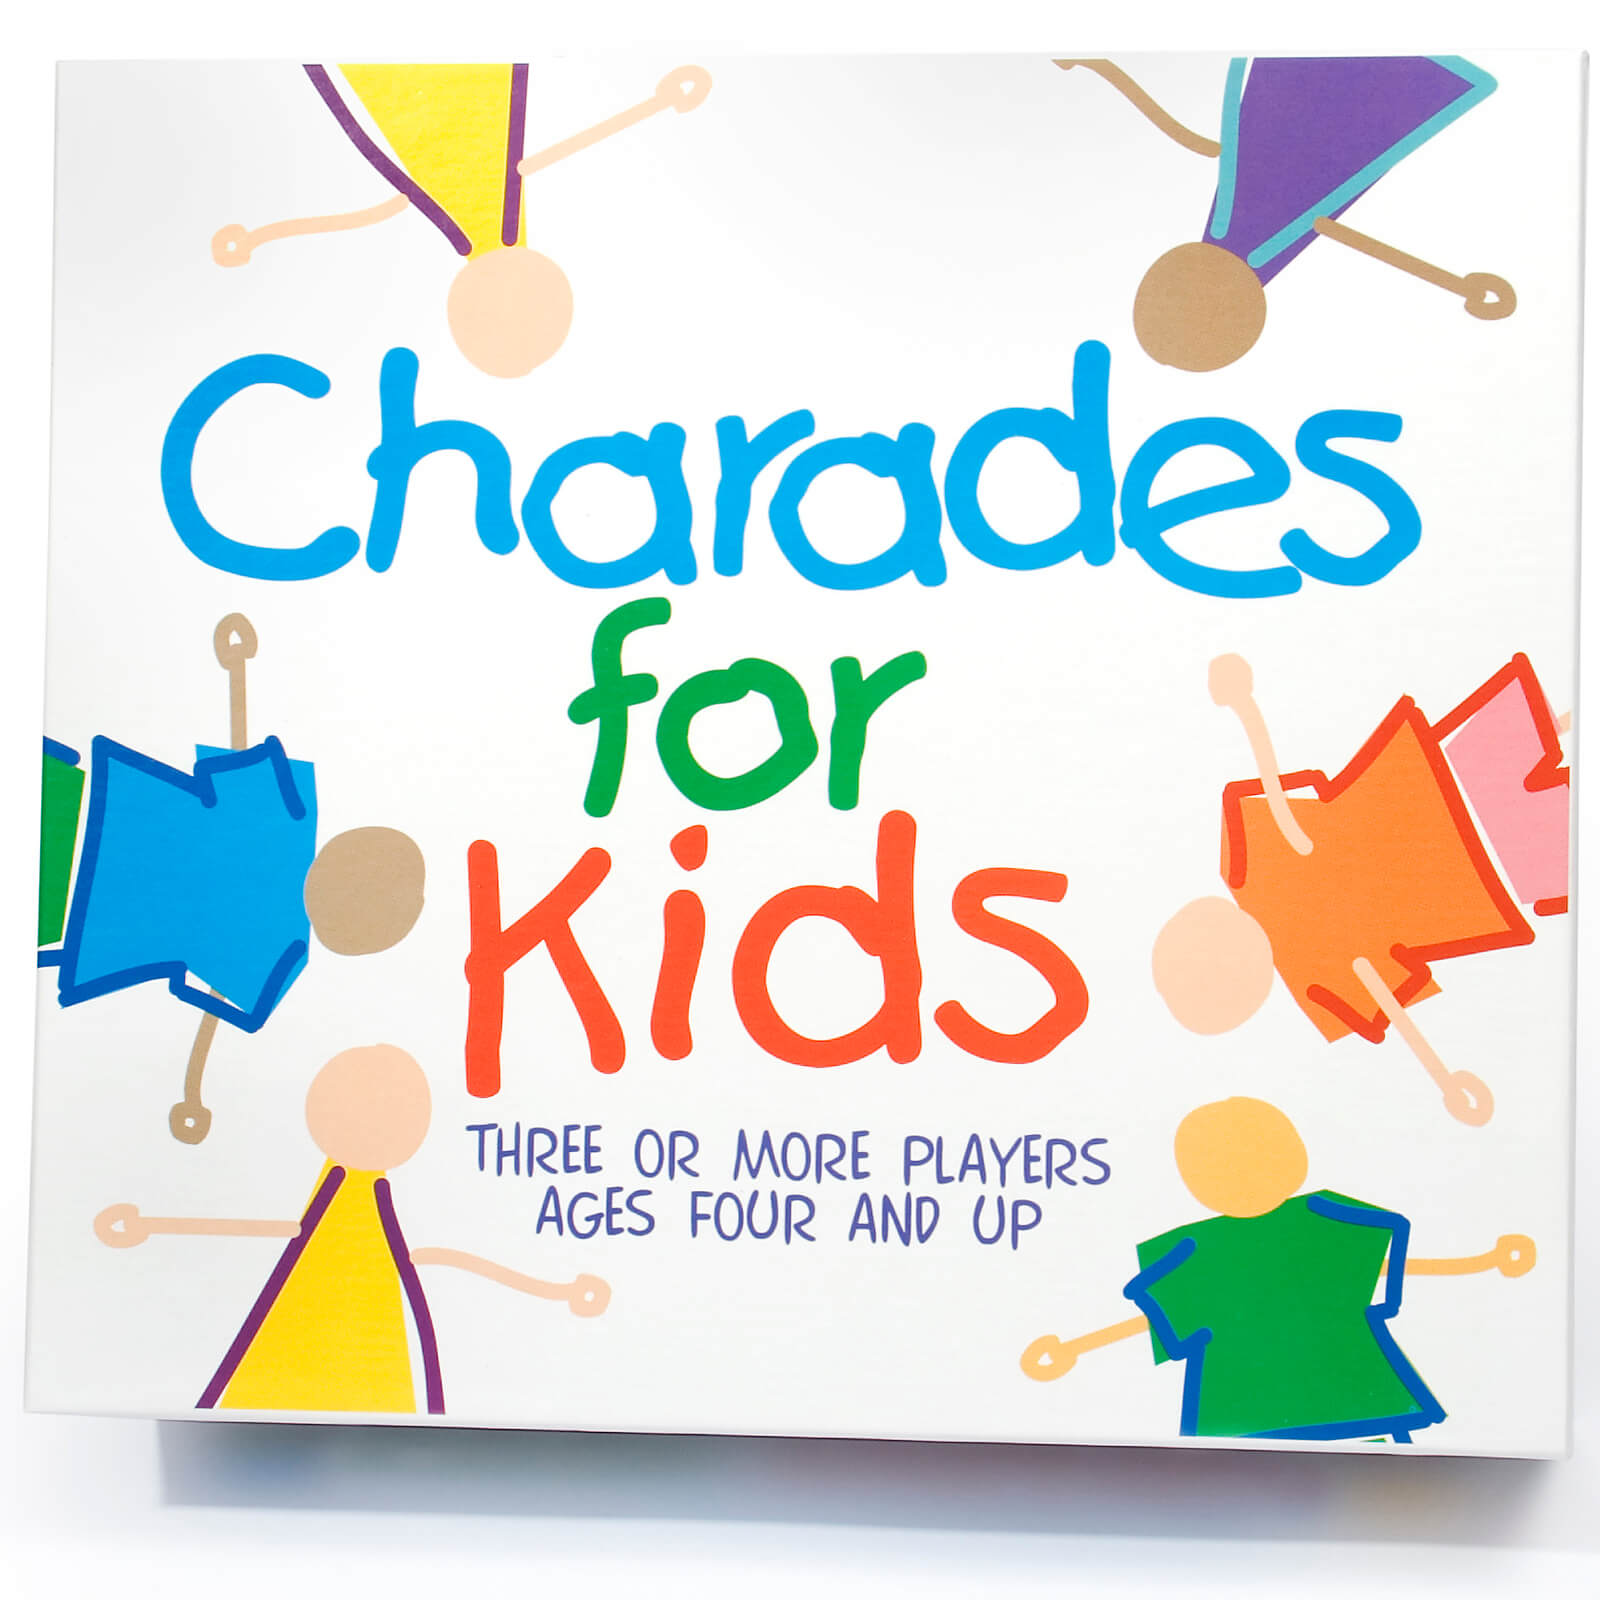 Image of Charades For Kids